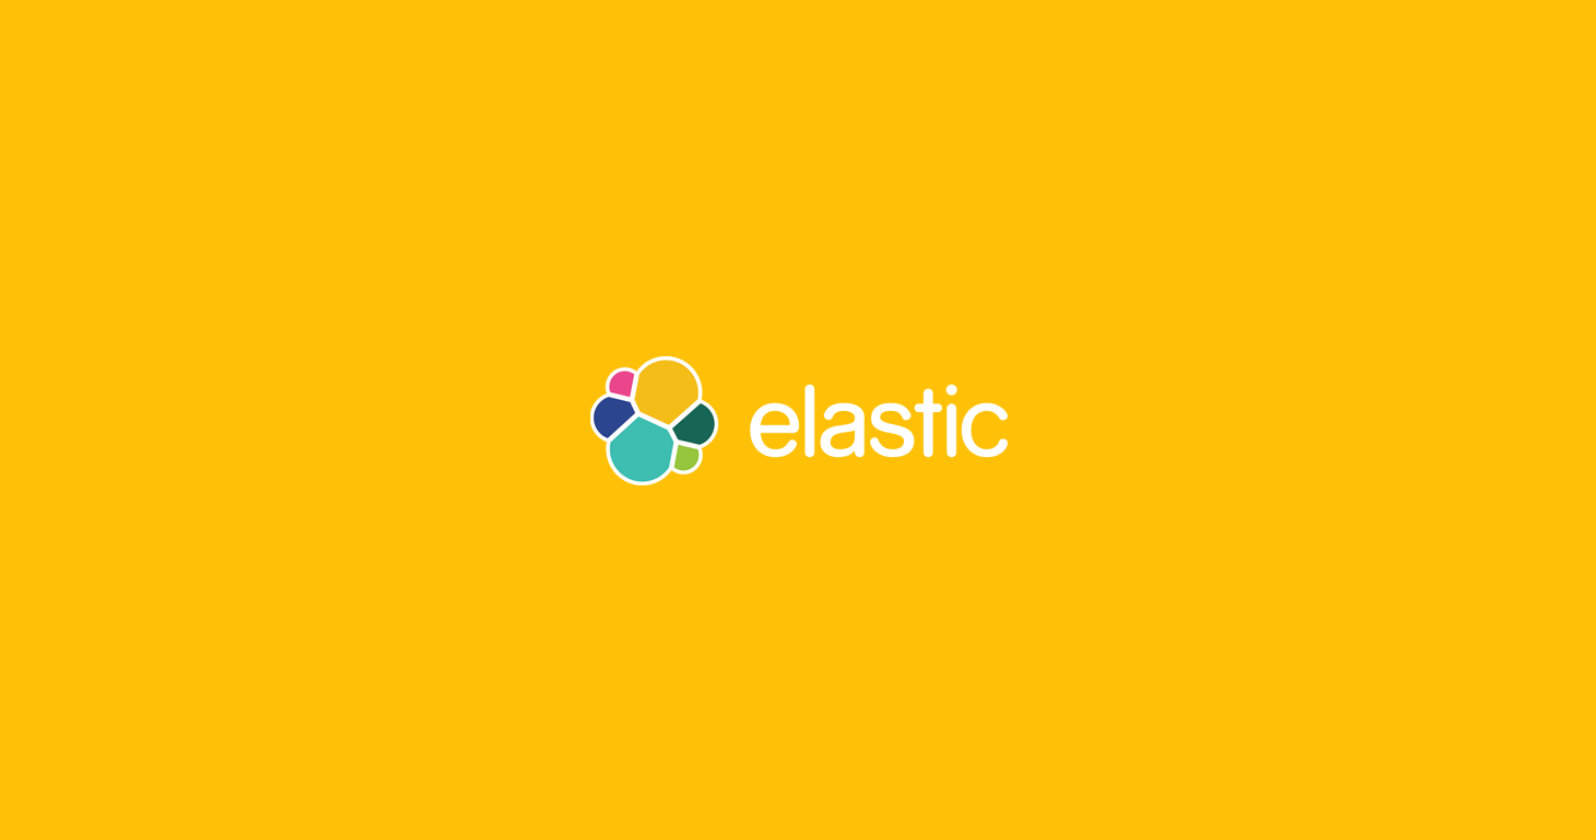 Elasticsearch is used as our secondary datastore for running queries and search on call transcriptions. In this article, we'll discuss optimizations on the schema of our Elasticsearch index to suit our reporting workload.